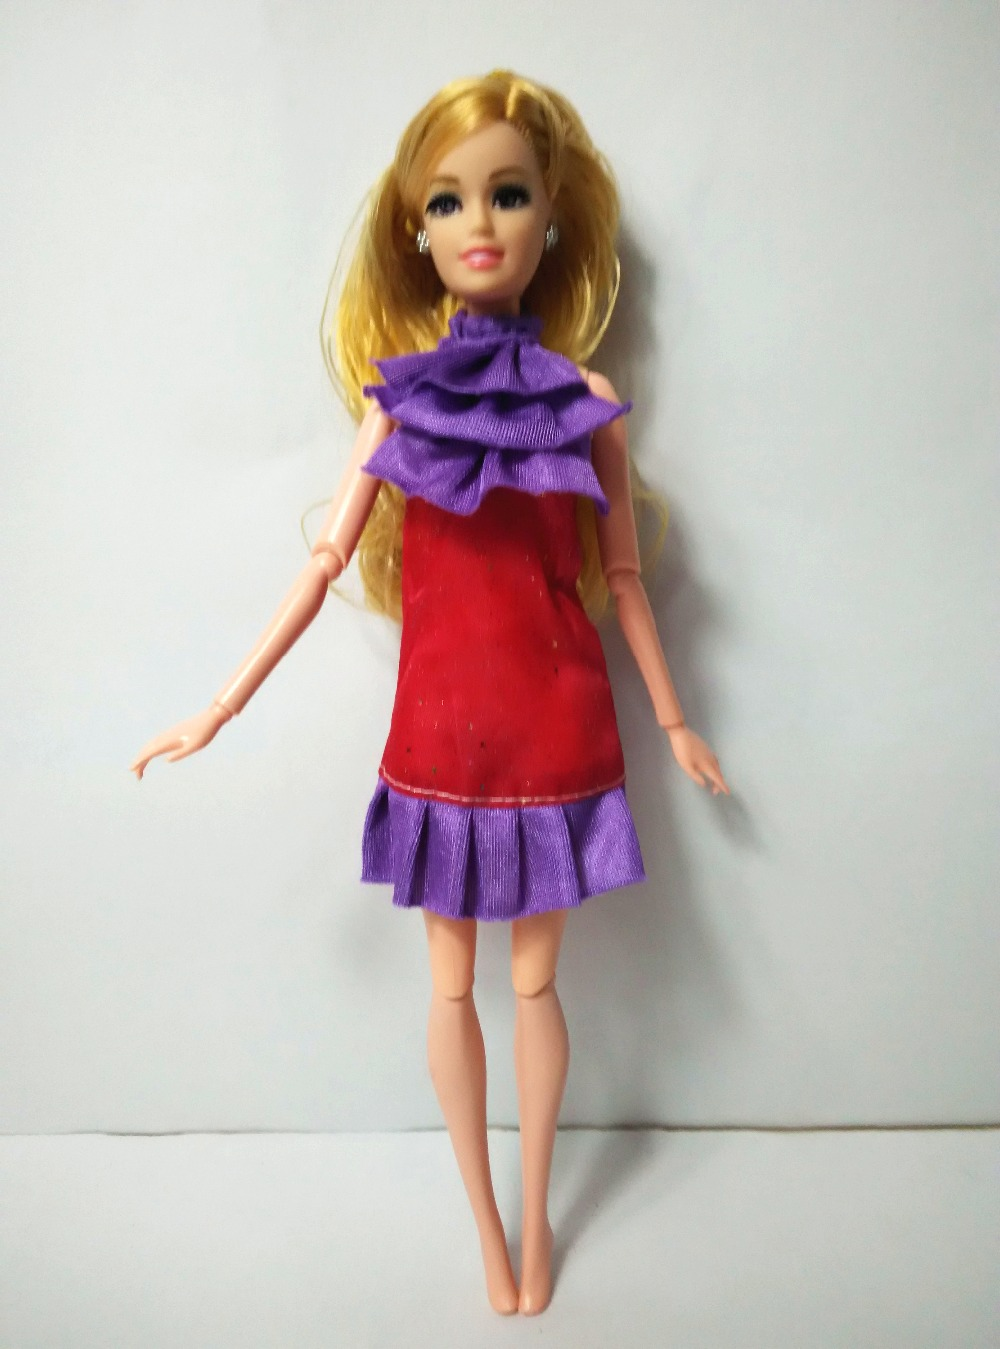 Unique For Barbie Purple Pink Speckl b118 Costume Garments Occasion Robe Informal wears 2016 dolls